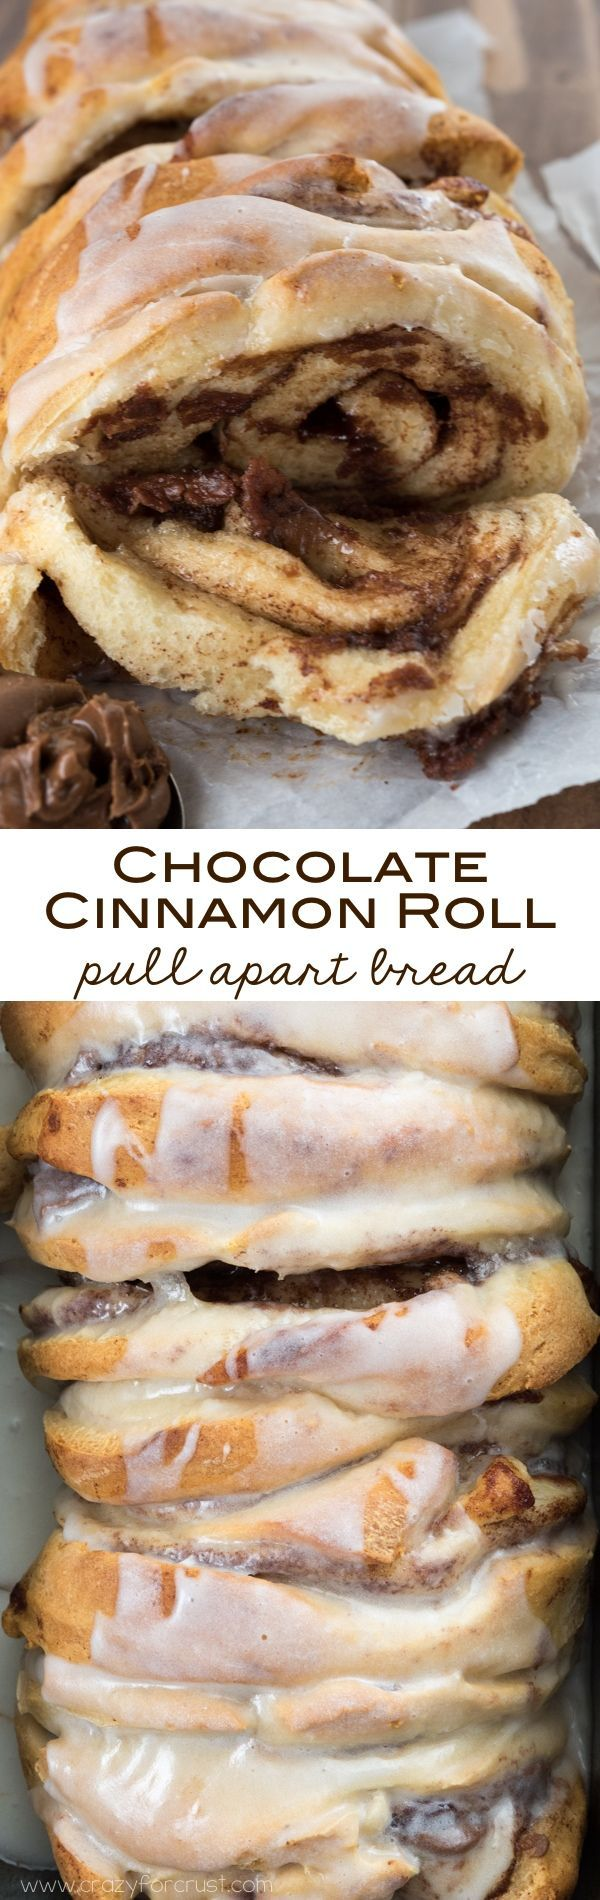 Chocolate Cinnamon Roll Pull Apart Bread with only 2 ingredients! An easy breakfast recipe on the table in under 30 minutes.